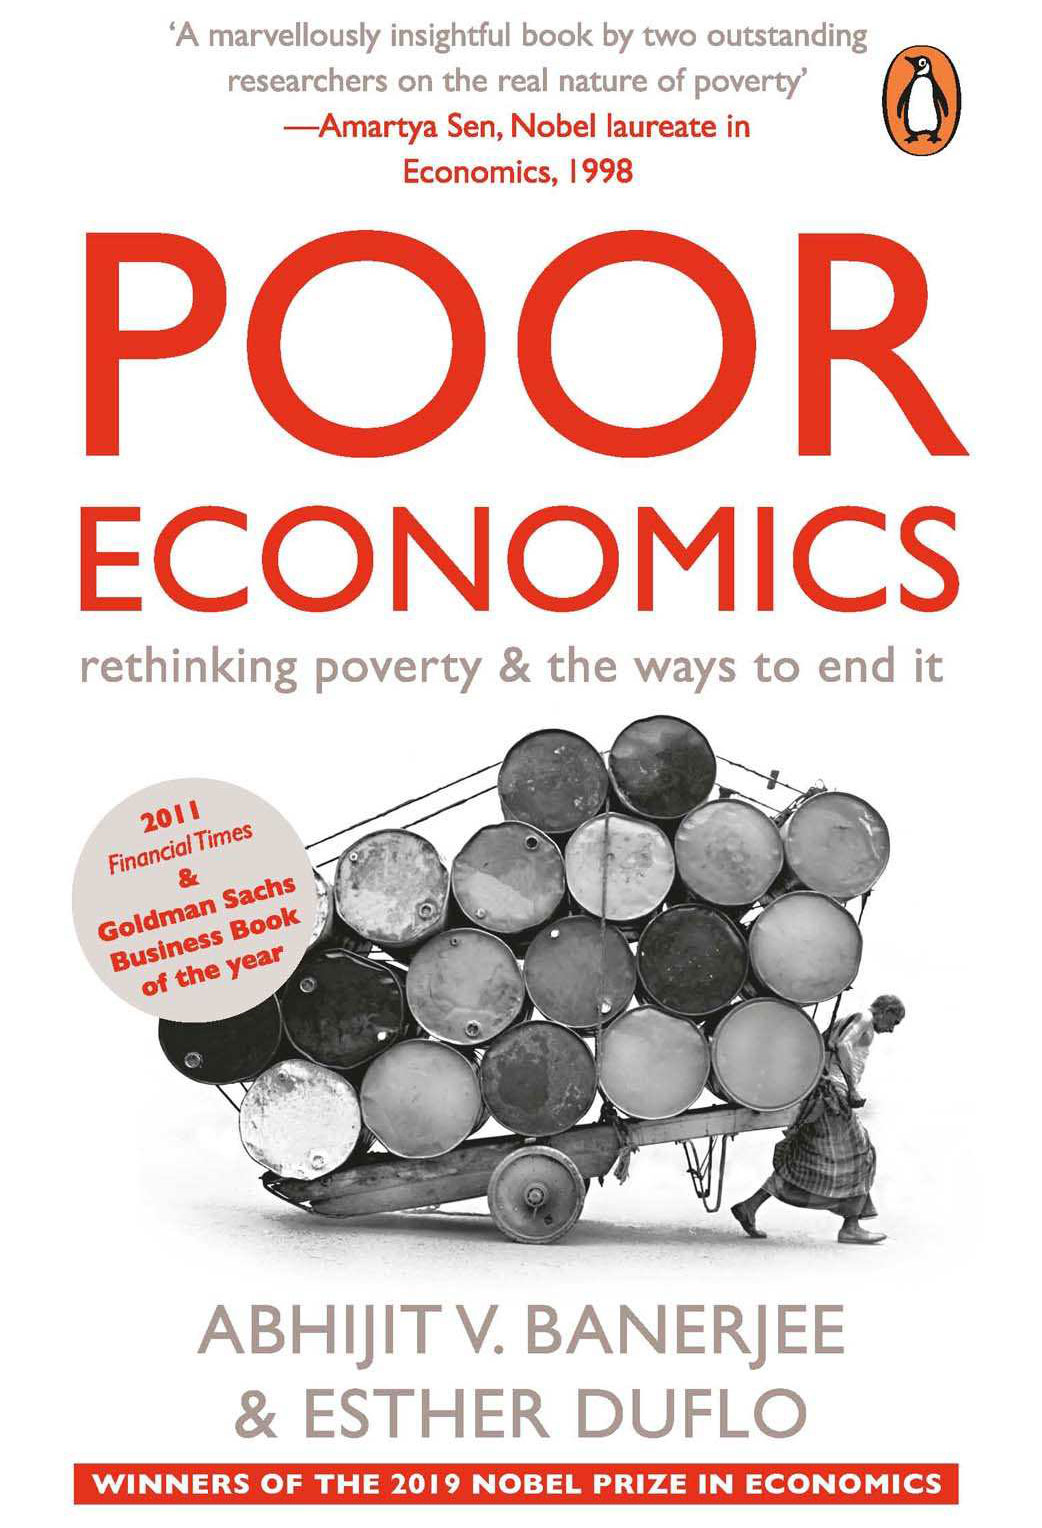 Book Title:Poor Economics: rethinking poverty & the ways to end it